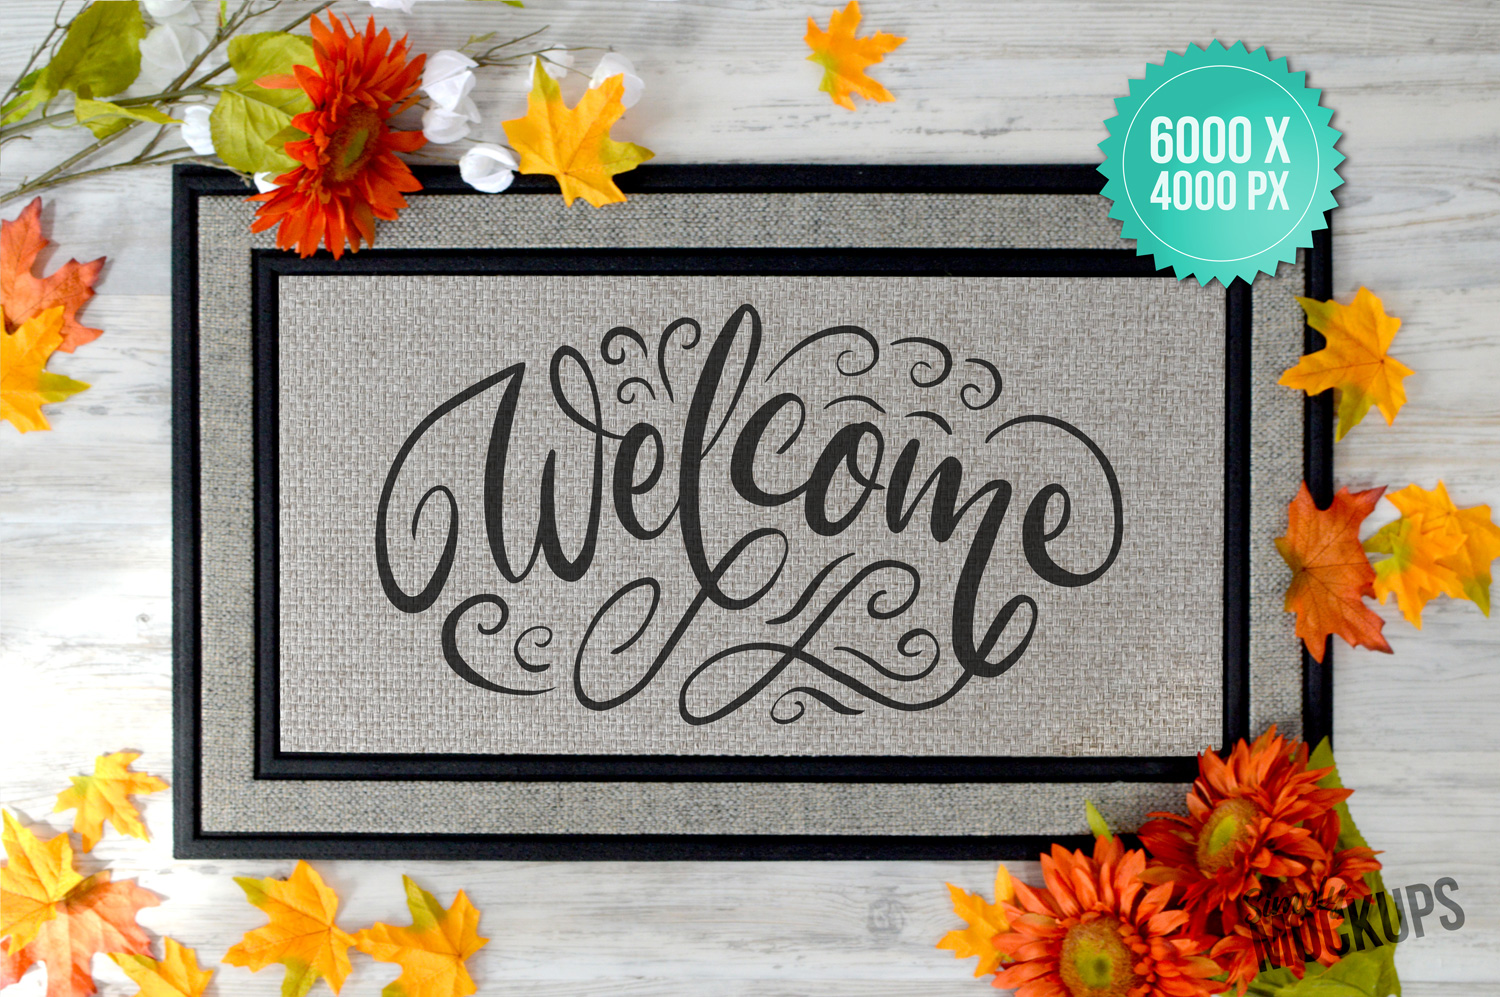 Sublimation Doormat Mockup With Flowers & Shoes example image 2